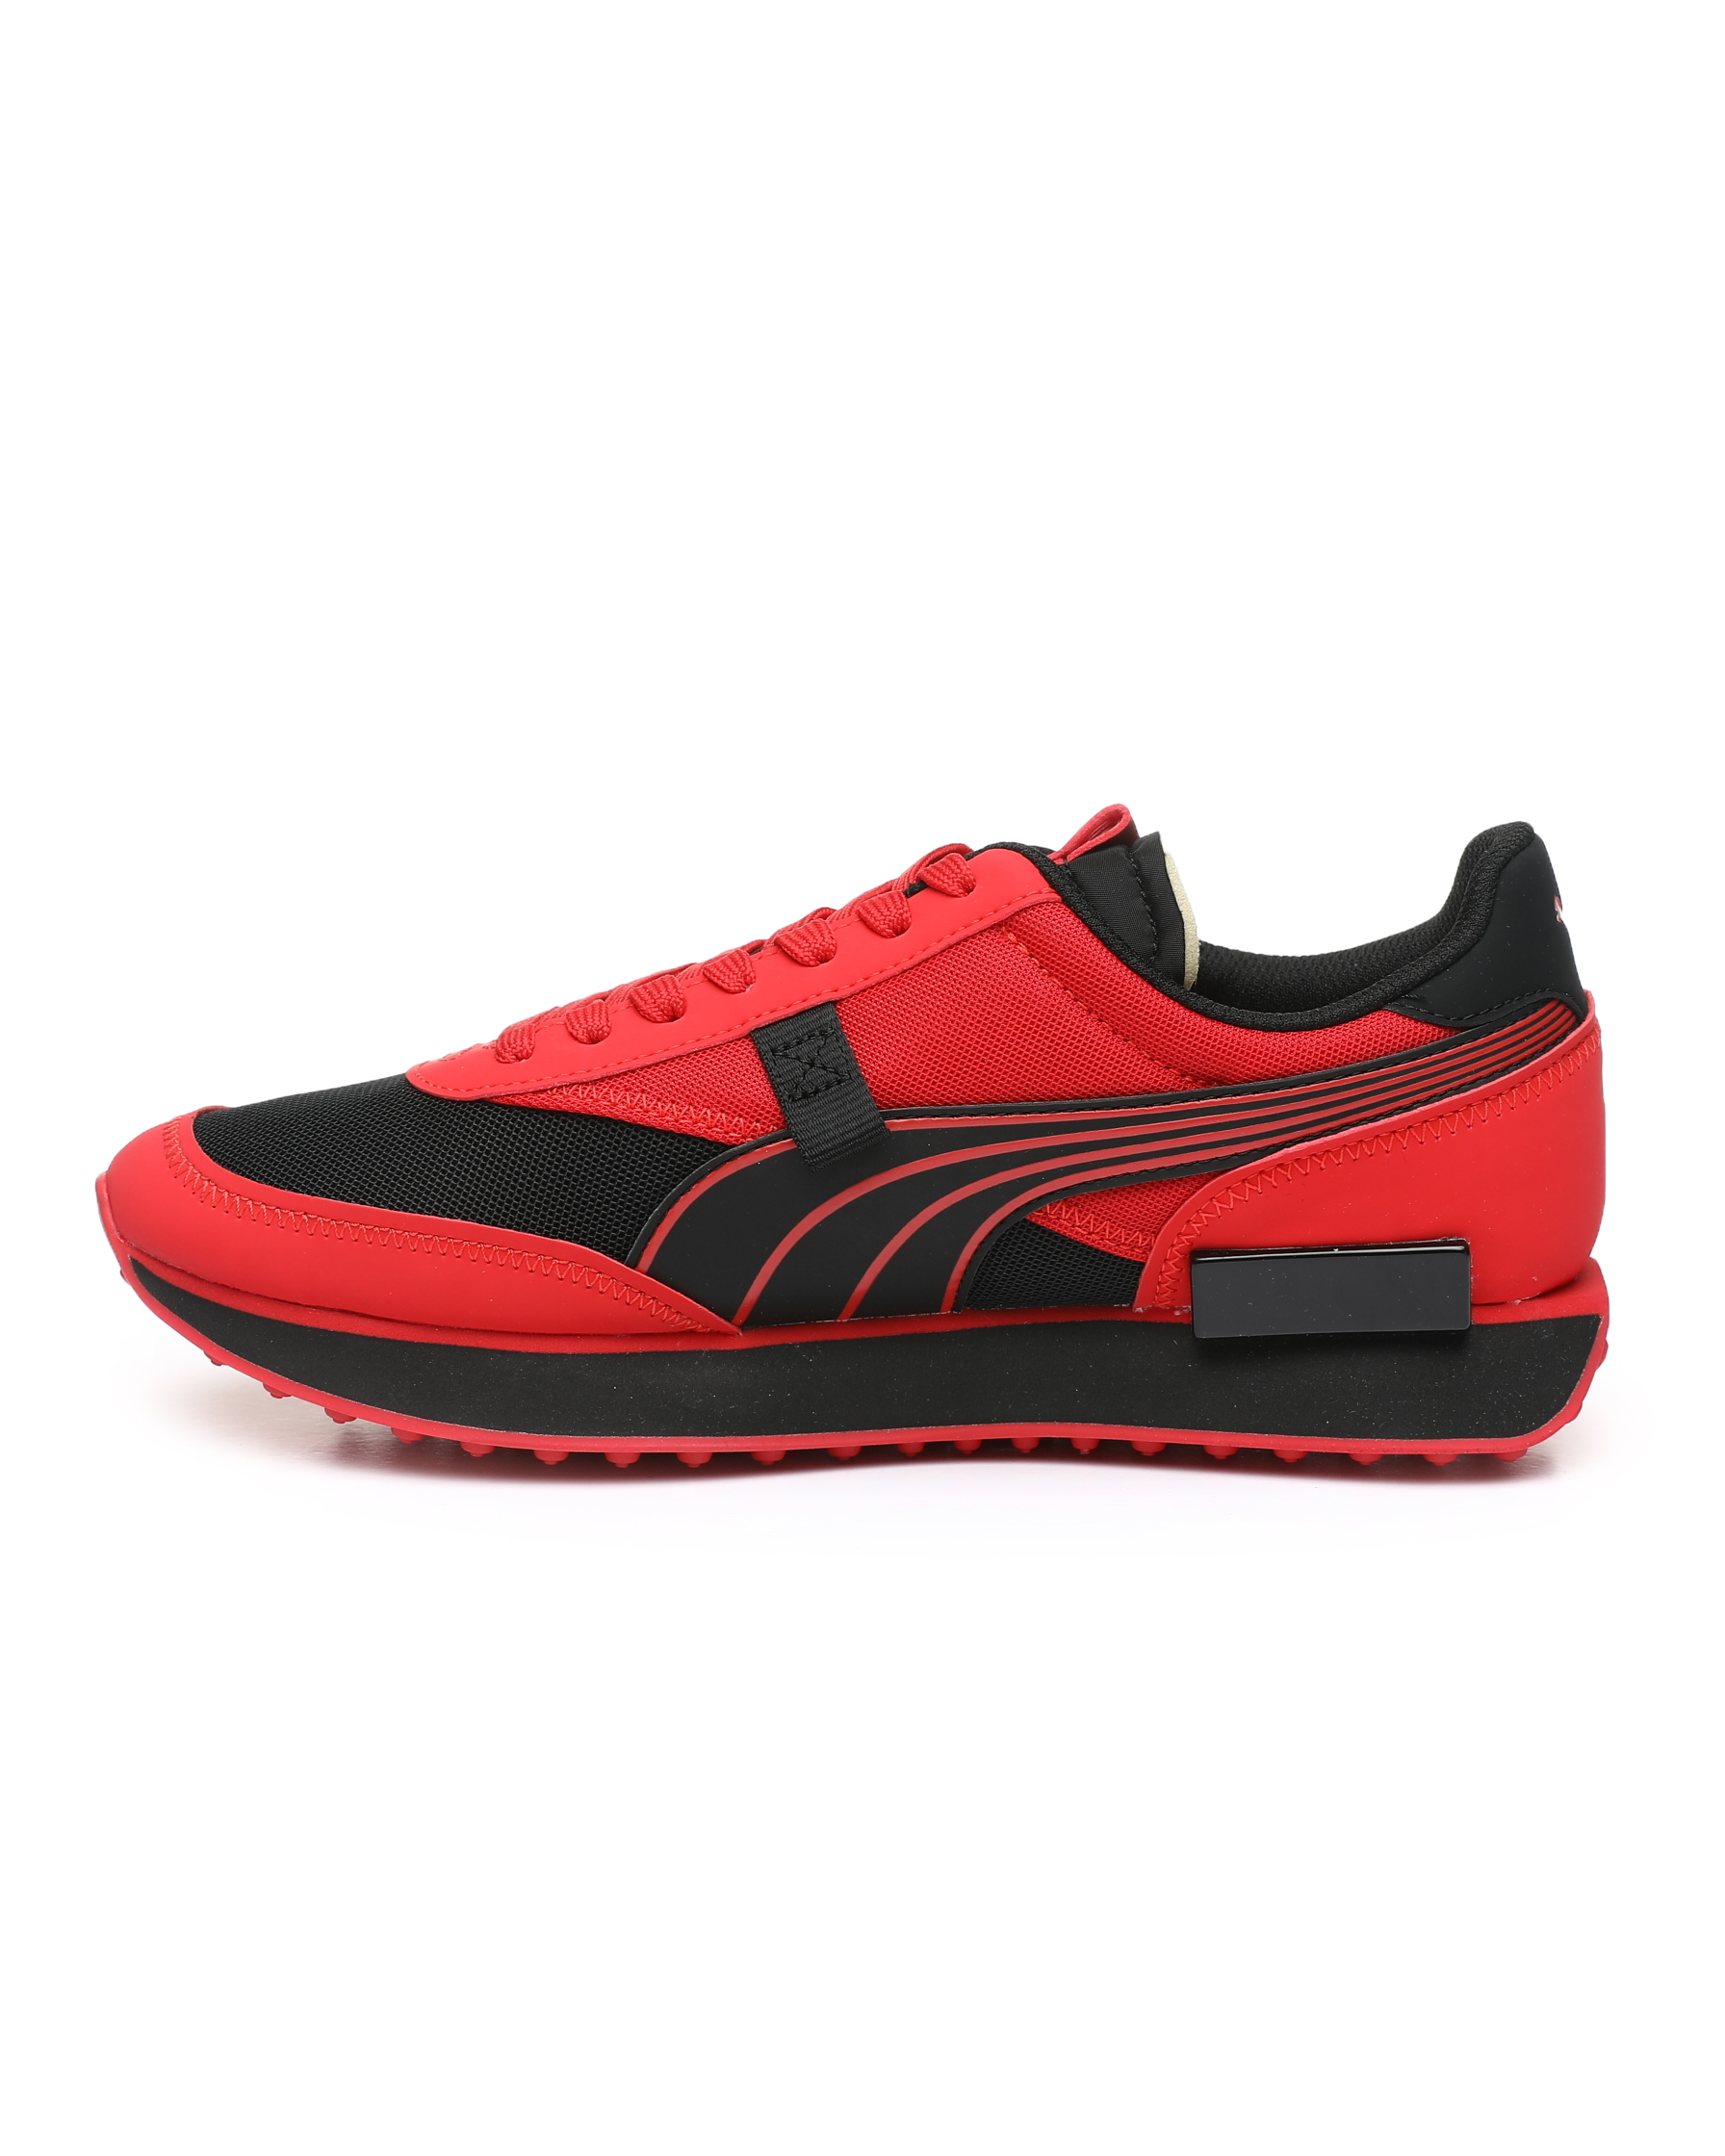 Buy Future Rider Ripper Sneakers Men's Footwear from Puma